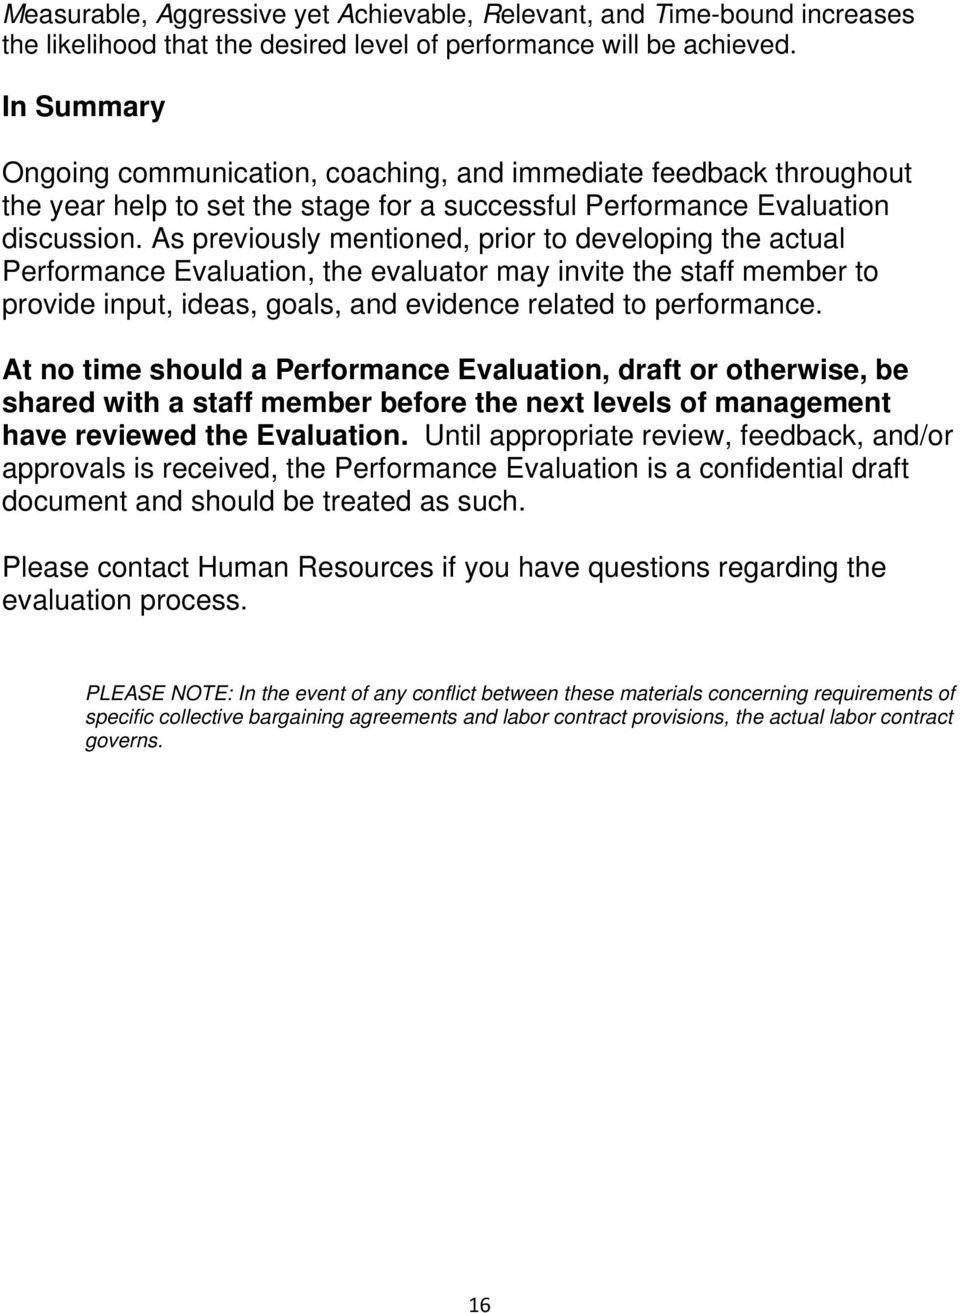 As previously mentioned, prior to developing the actual Performance Evaluation, the evaluator may invite the staff member to provide input, ideas, goals, and evidence related to performance.